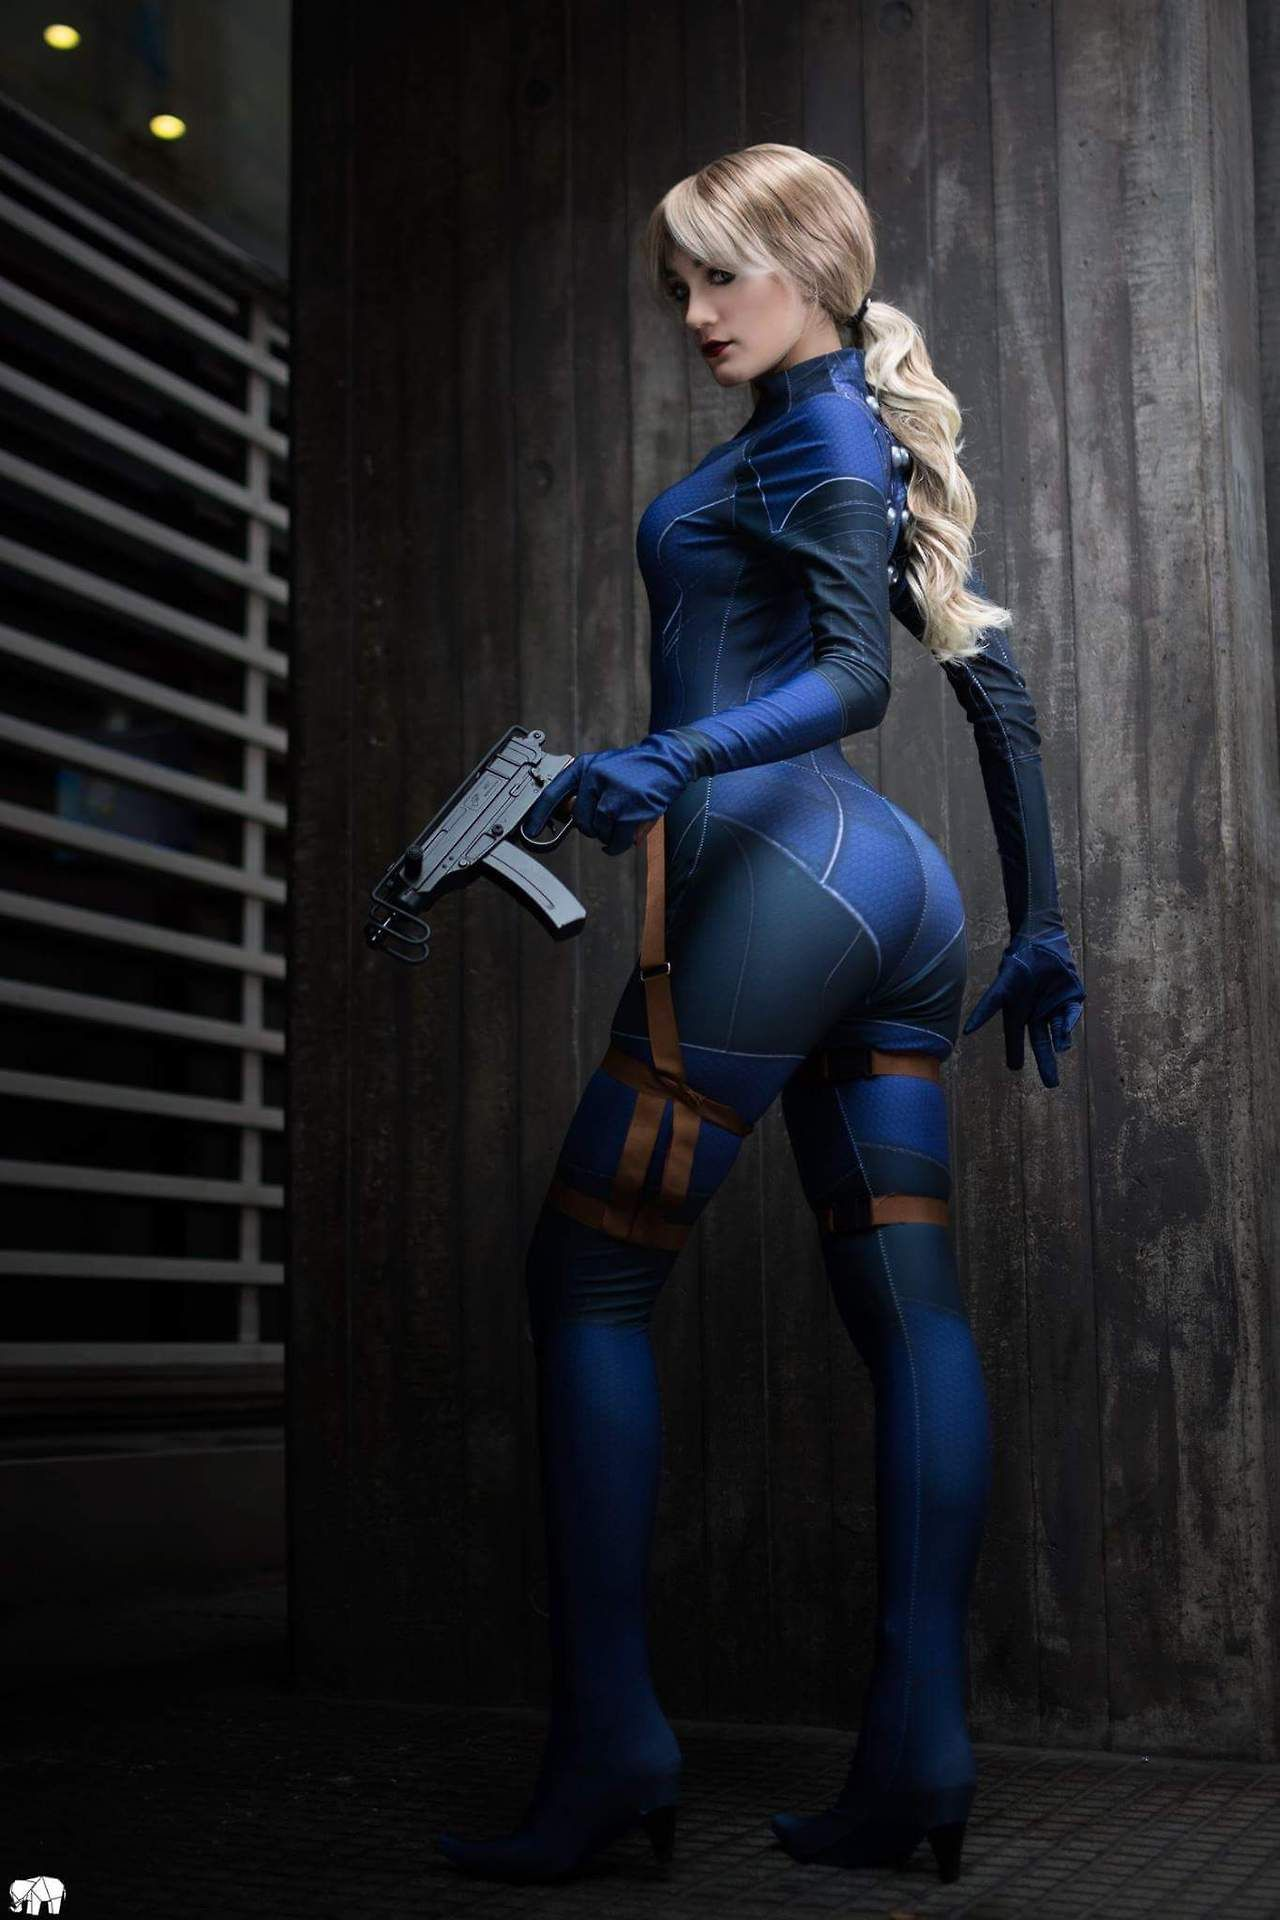 Pin By Alex Brewer On Cosplay Pinterest Chicas